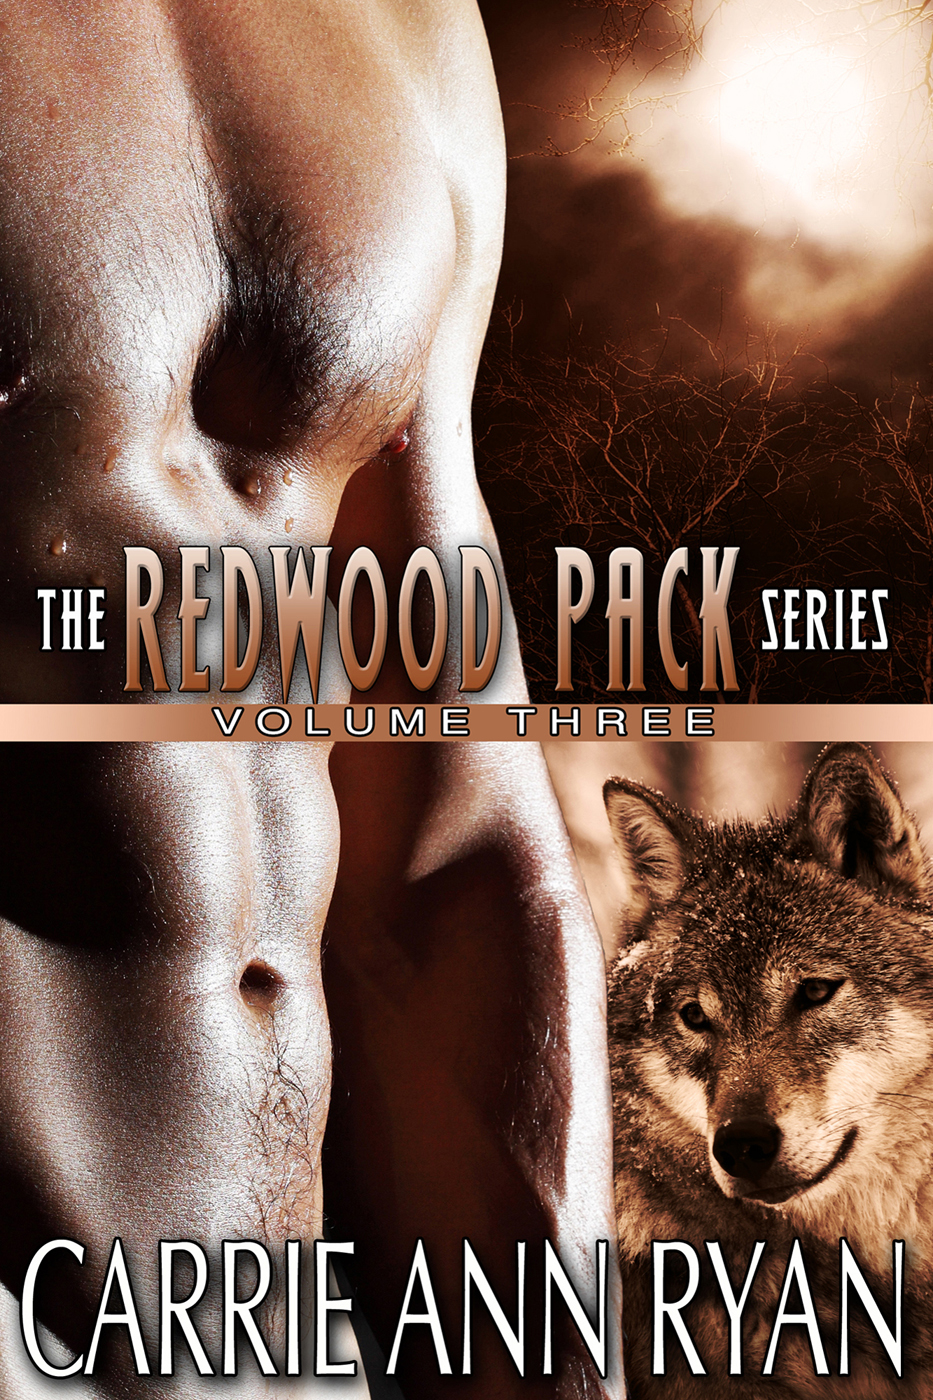 Redwood Pack Vol 3